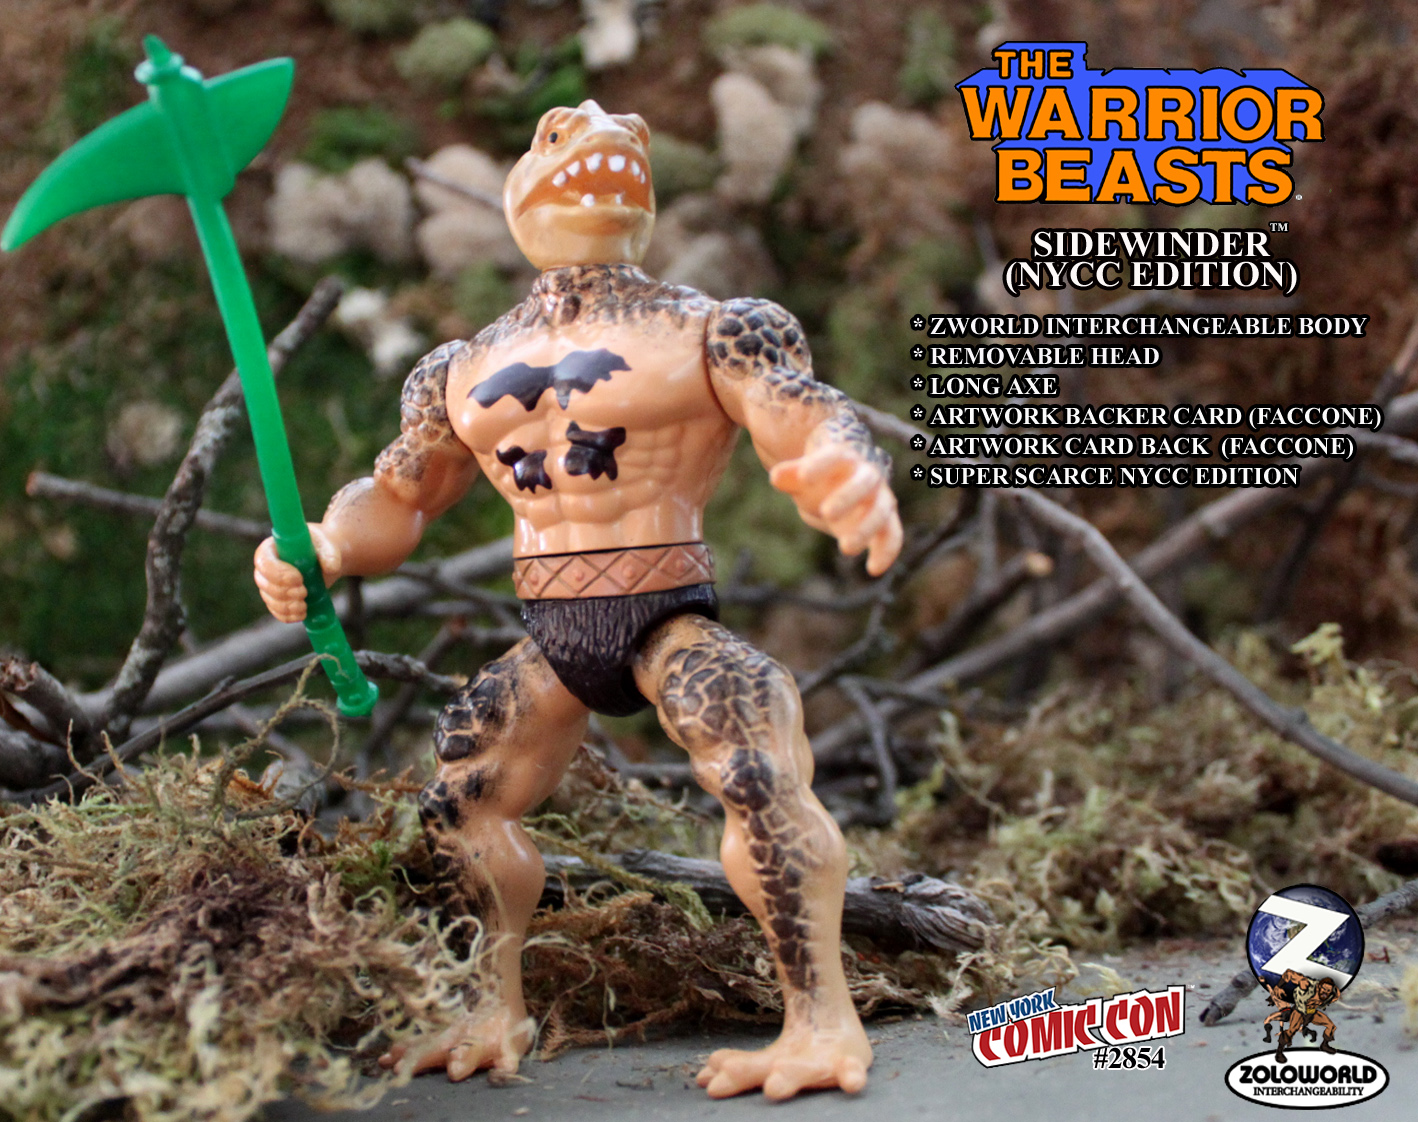 NYCC EXCLUSIVE WARRIOR BEASTS WAVE 2 Sidewinder Action Figure